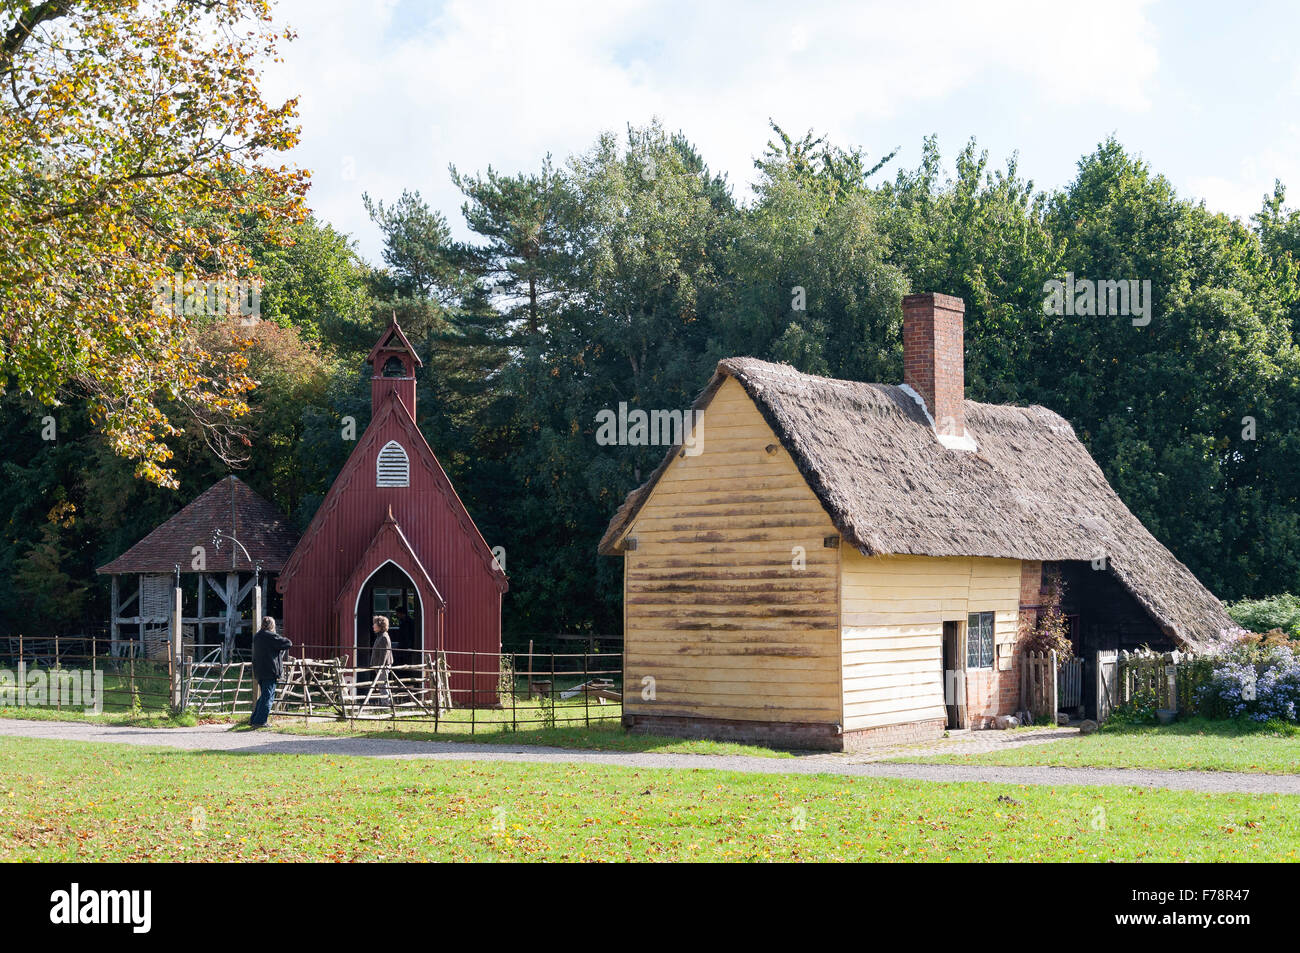 Leagrave Cottage & Henton Mission Room, Chiltern Open Air Museum, Chalfont St Giles Buckinghamshire, England, - Stock Image